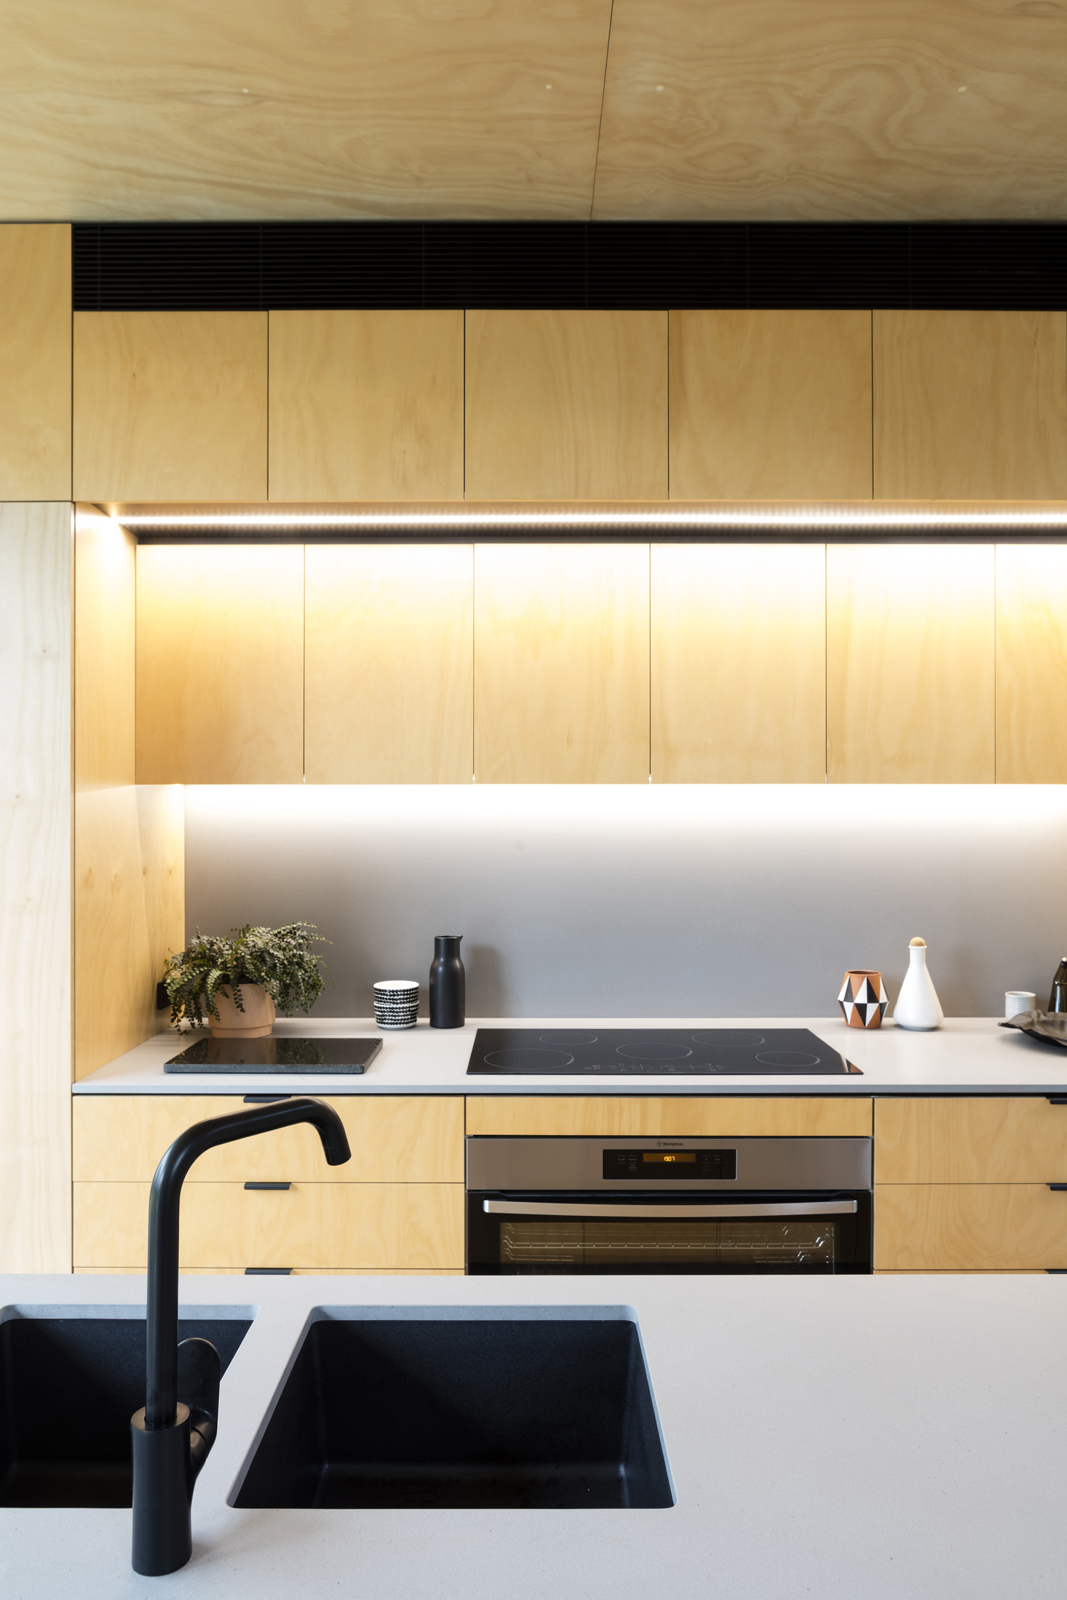 Gallery Of Binary House By Christopher Polly Architect Local Australian Design And Interiors Woolooware, Nsw Image 36